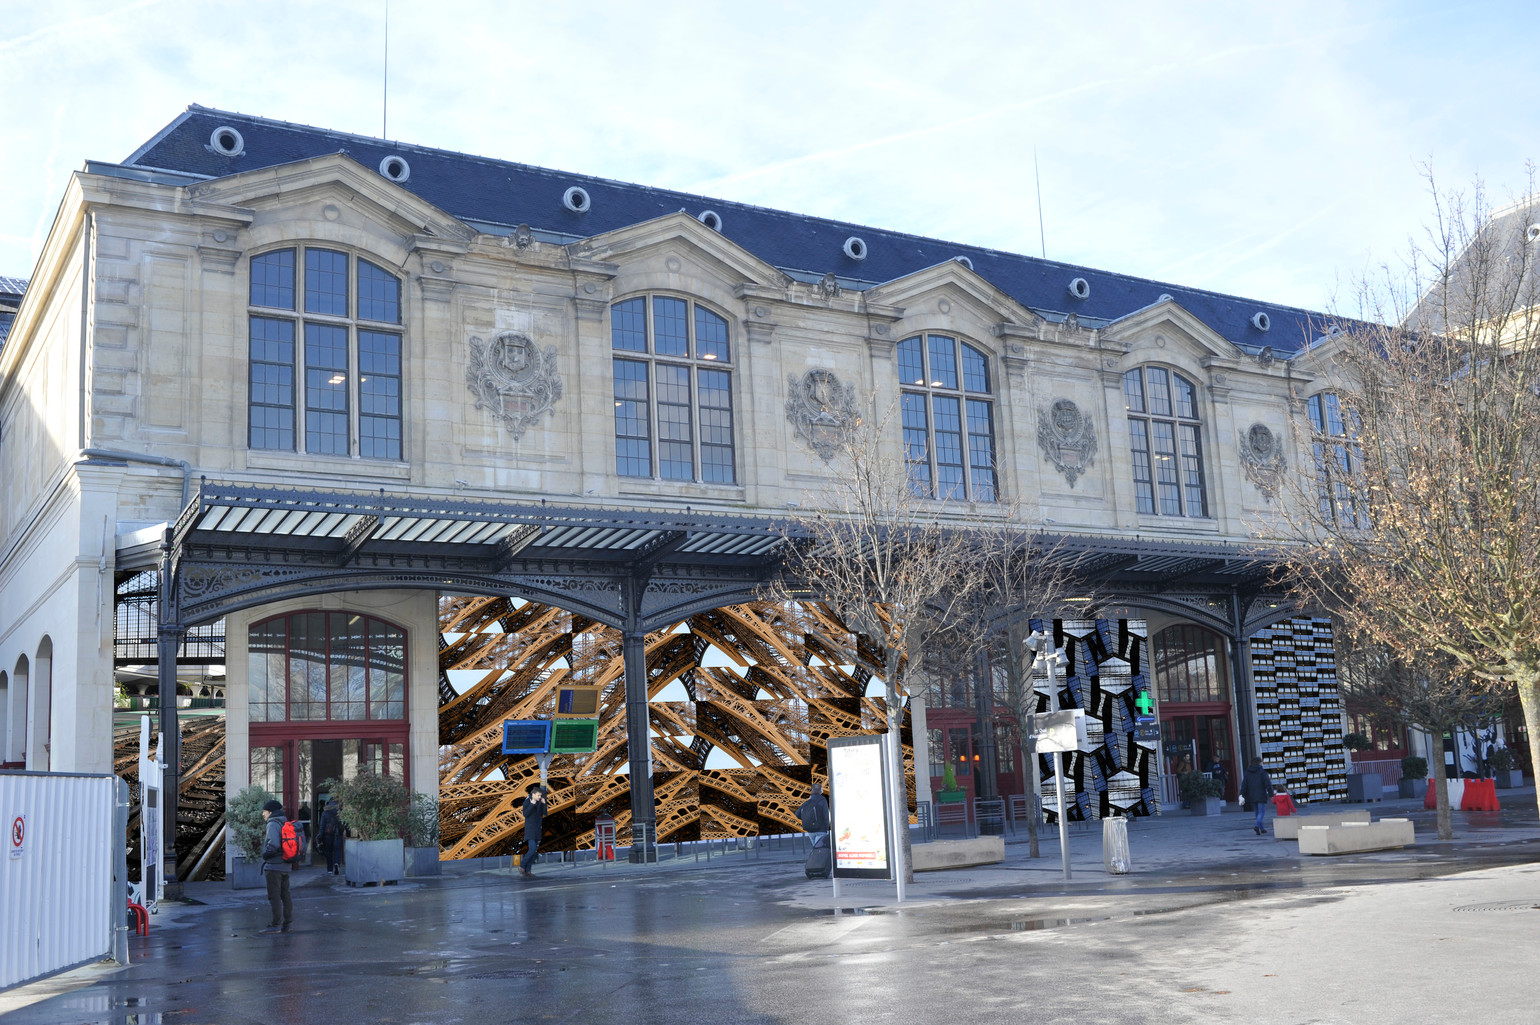 Paris en gare